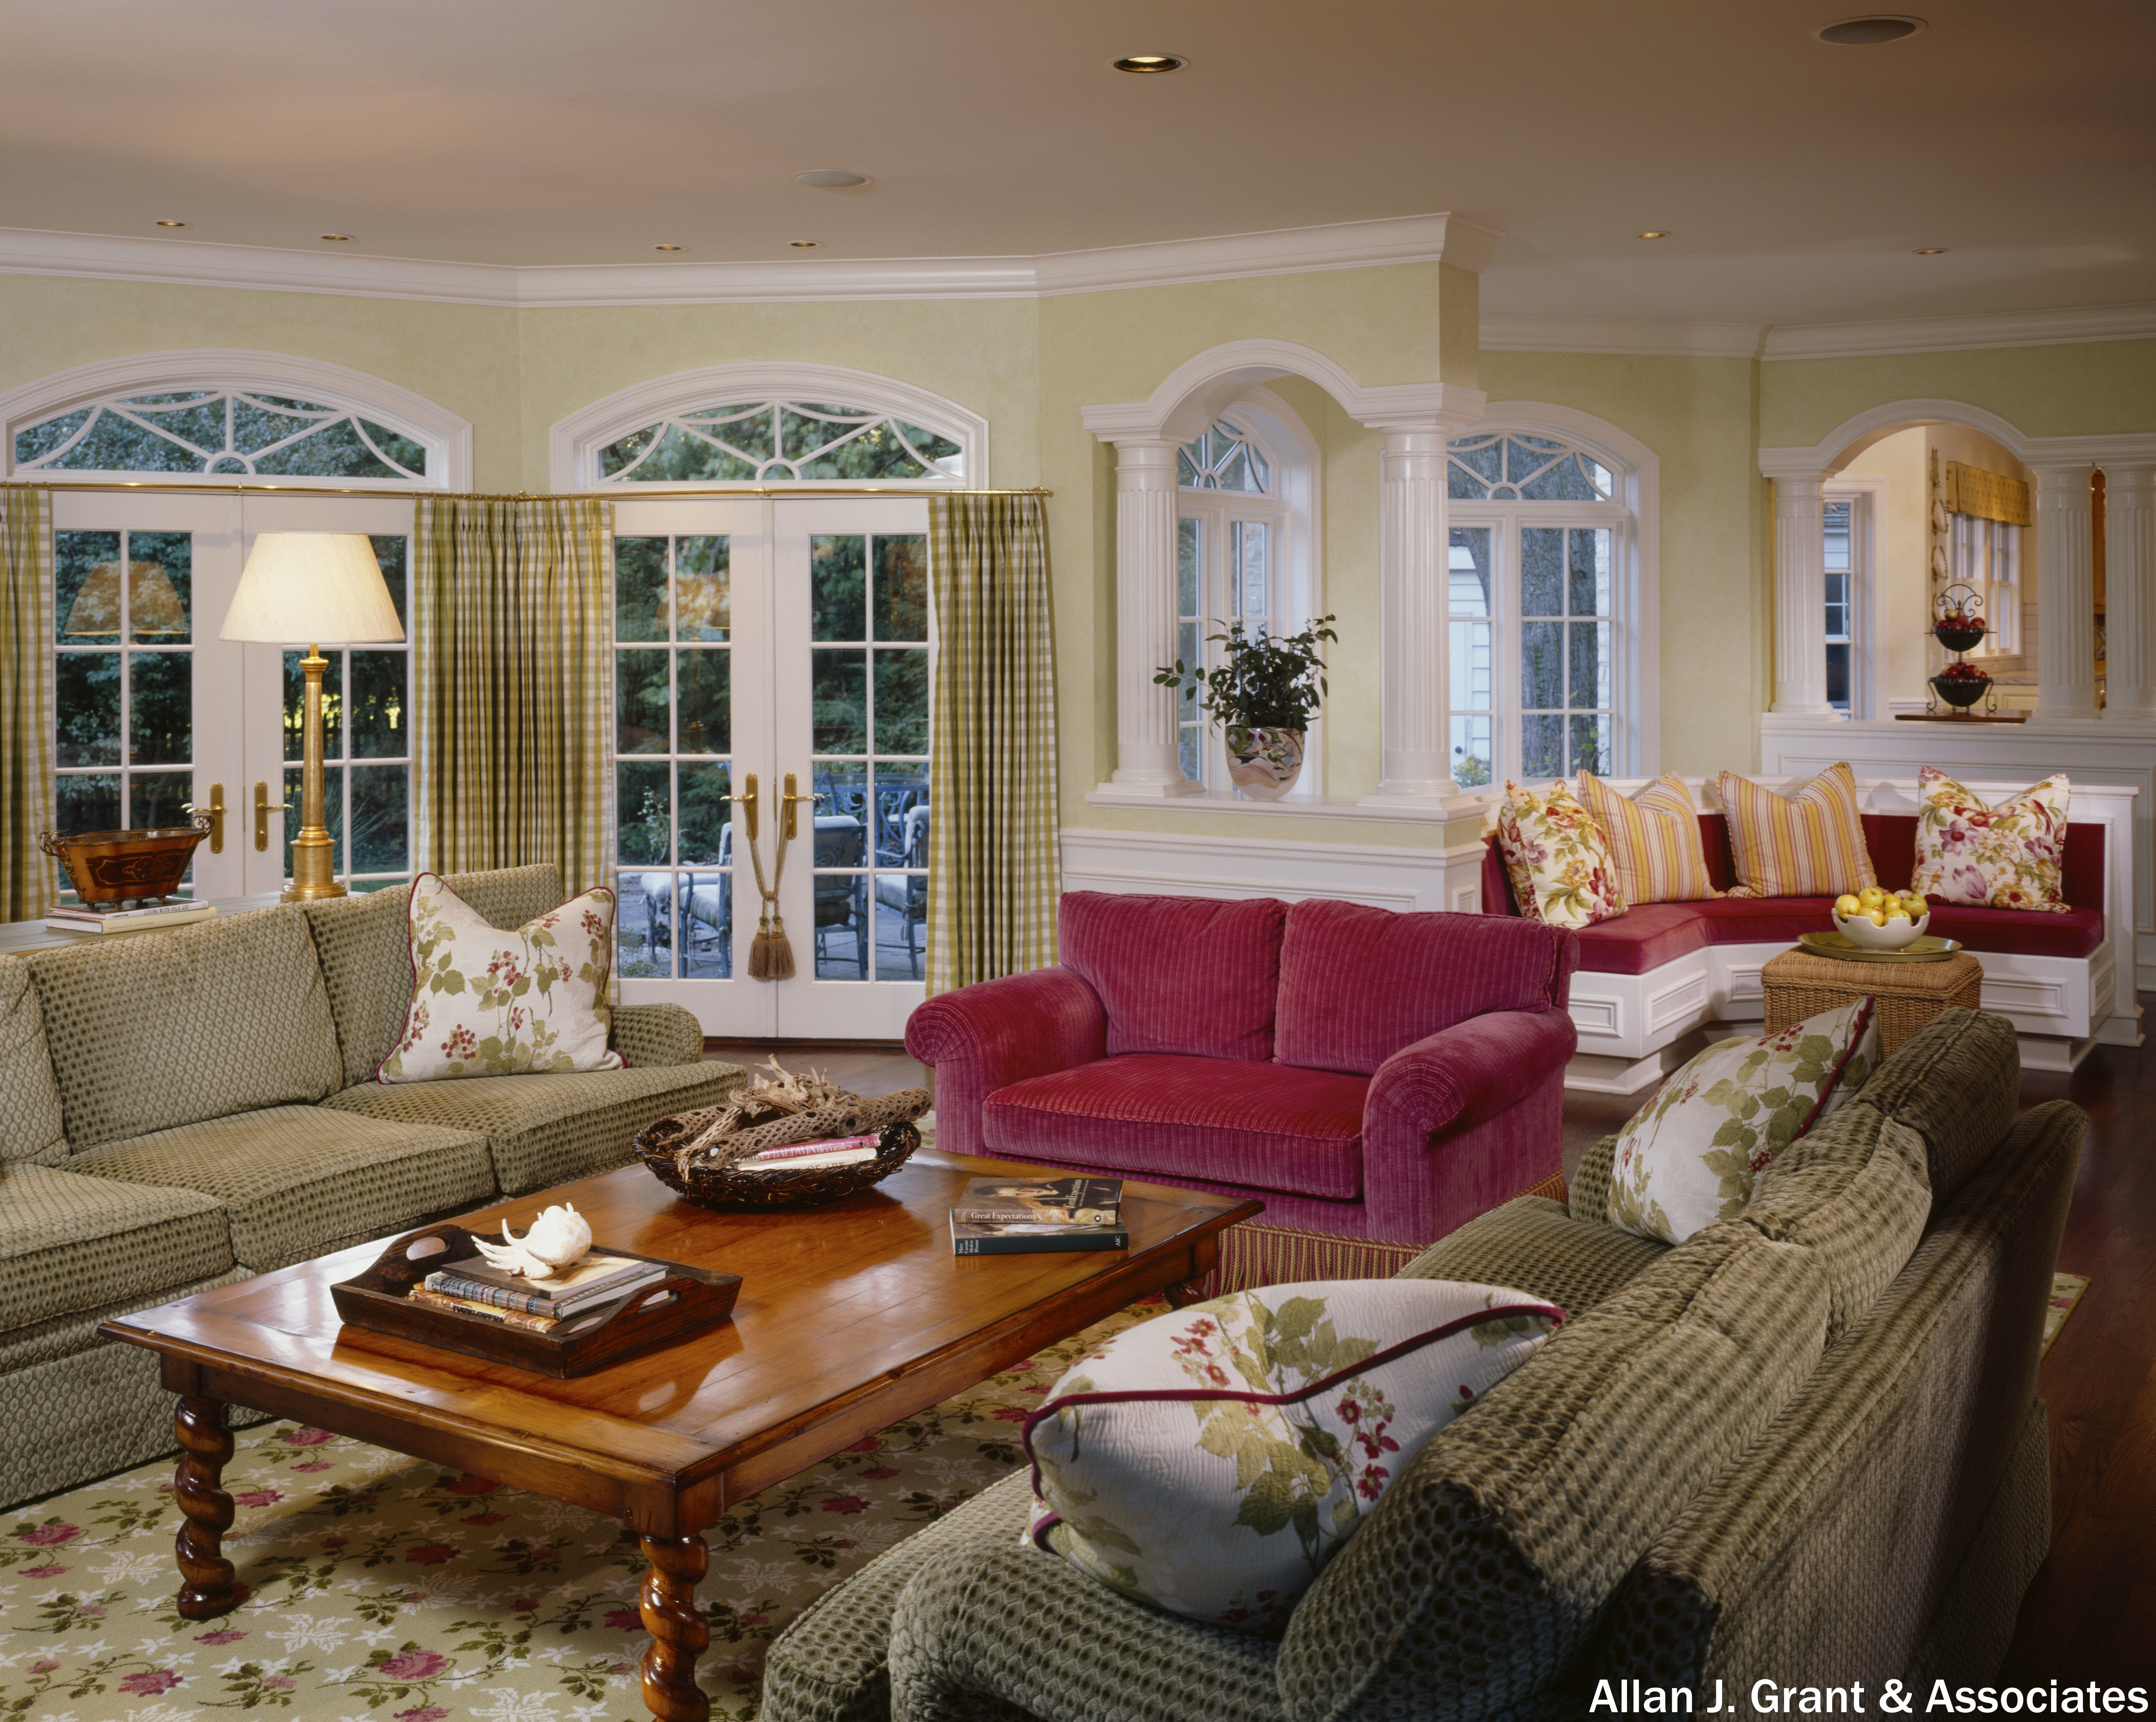 Very Crowded Living Room With A Queen Anne Design Gold Accents Old Style